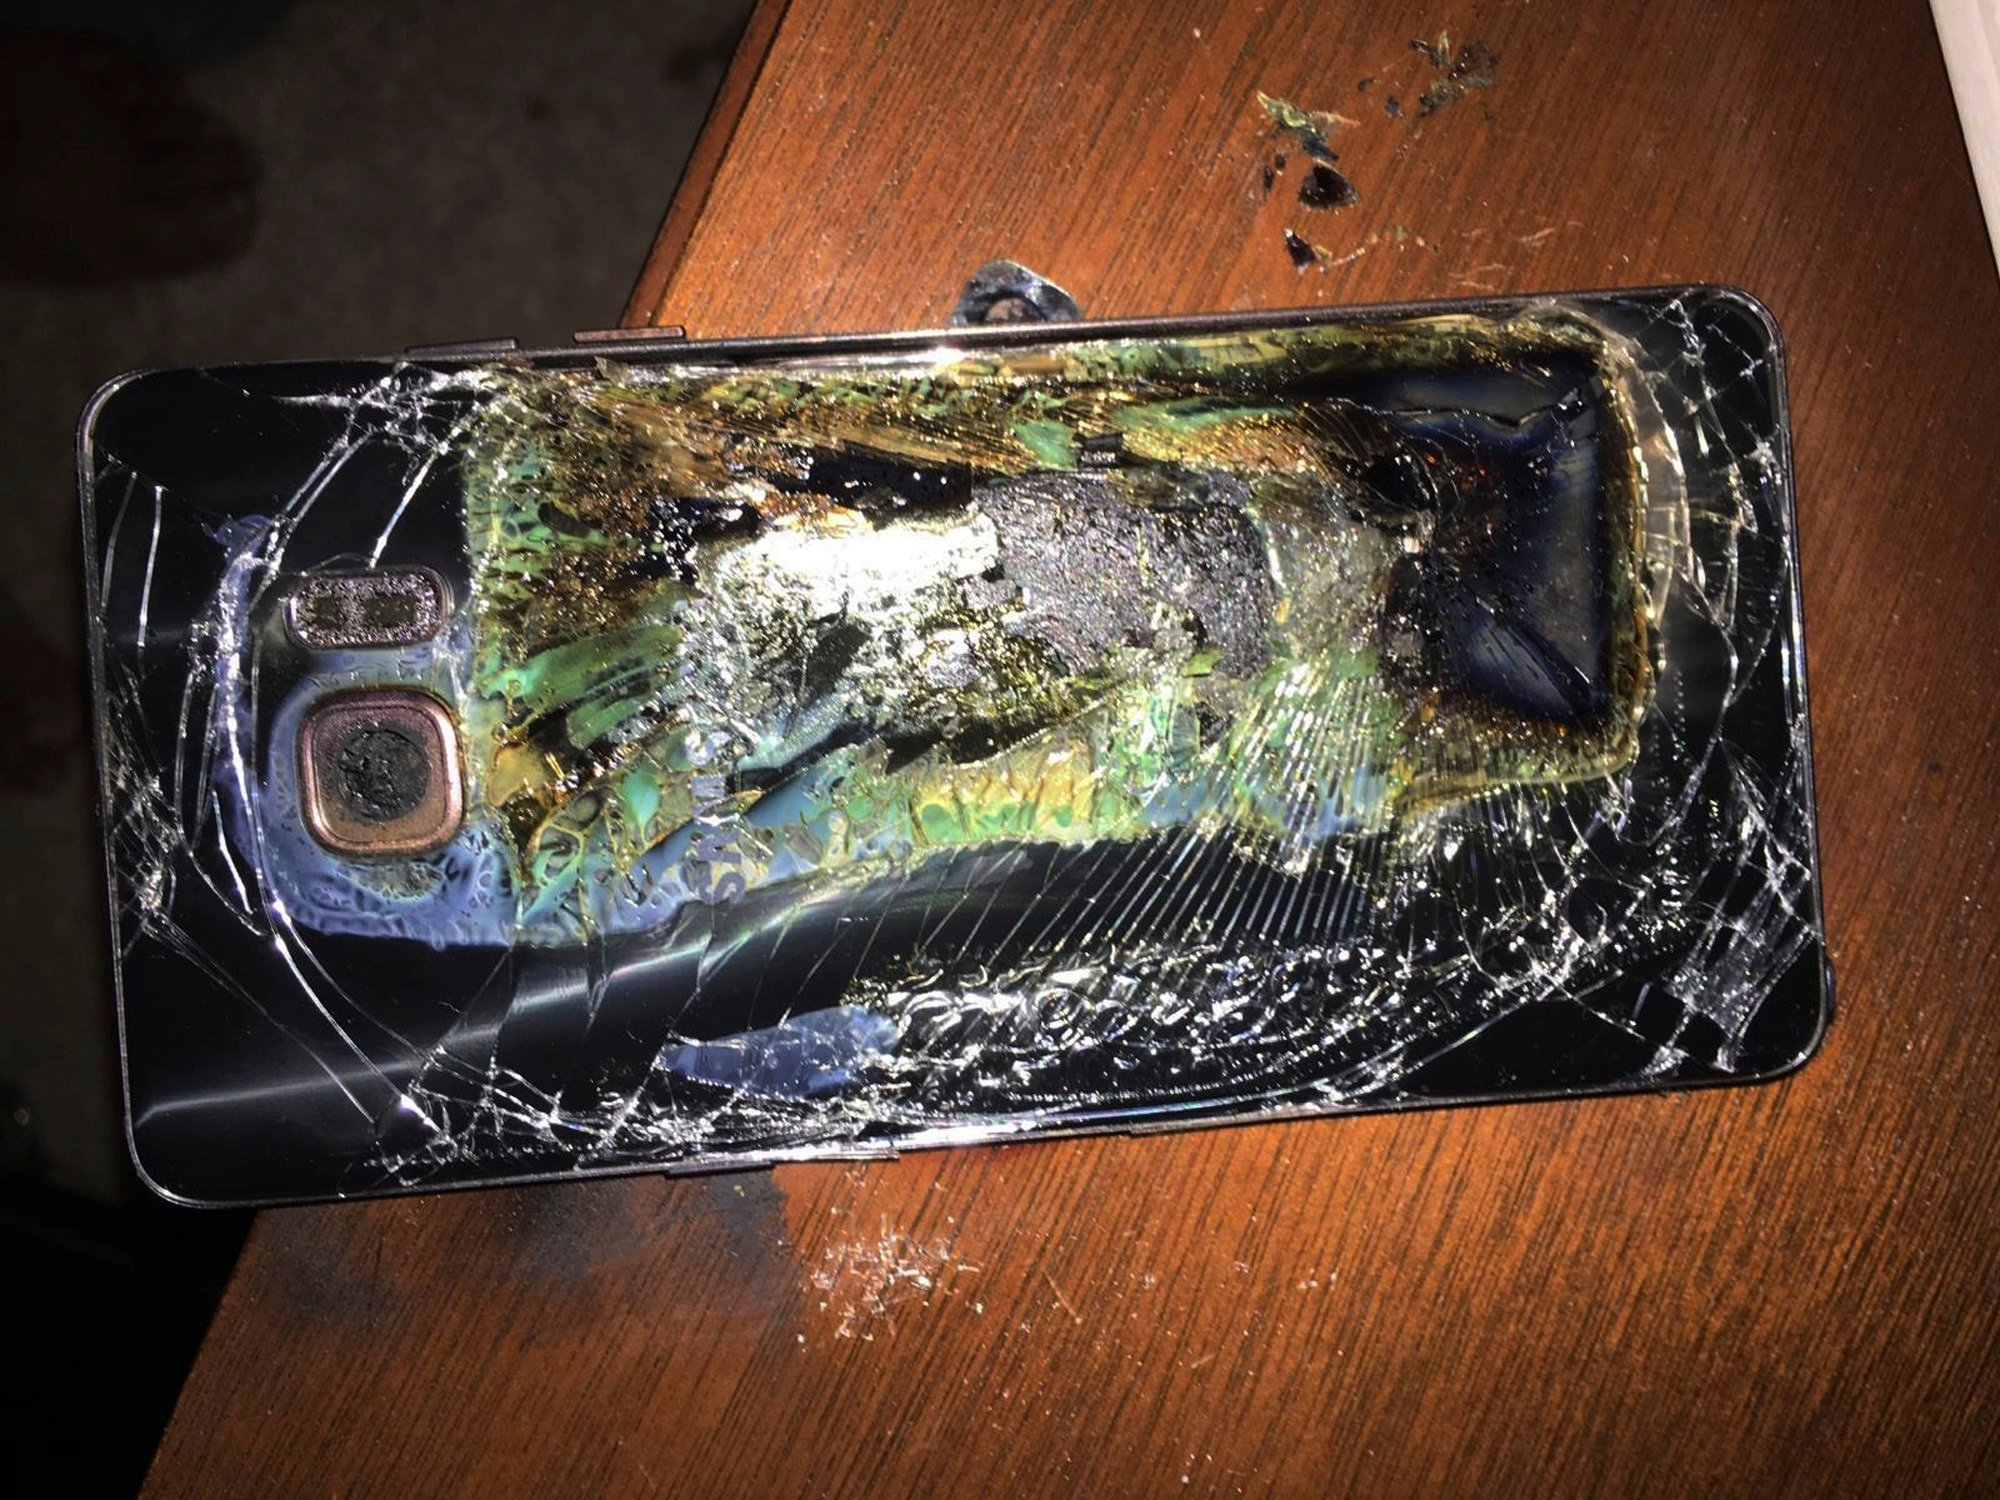 This Sunday, Oct. 9, 2016, file photo shows a damaged Samsung Galaxy Note 7 on a table in Richmond, Va., after it caught fire earlier in the day. (Source: Shawn L. Minter via AP, File)